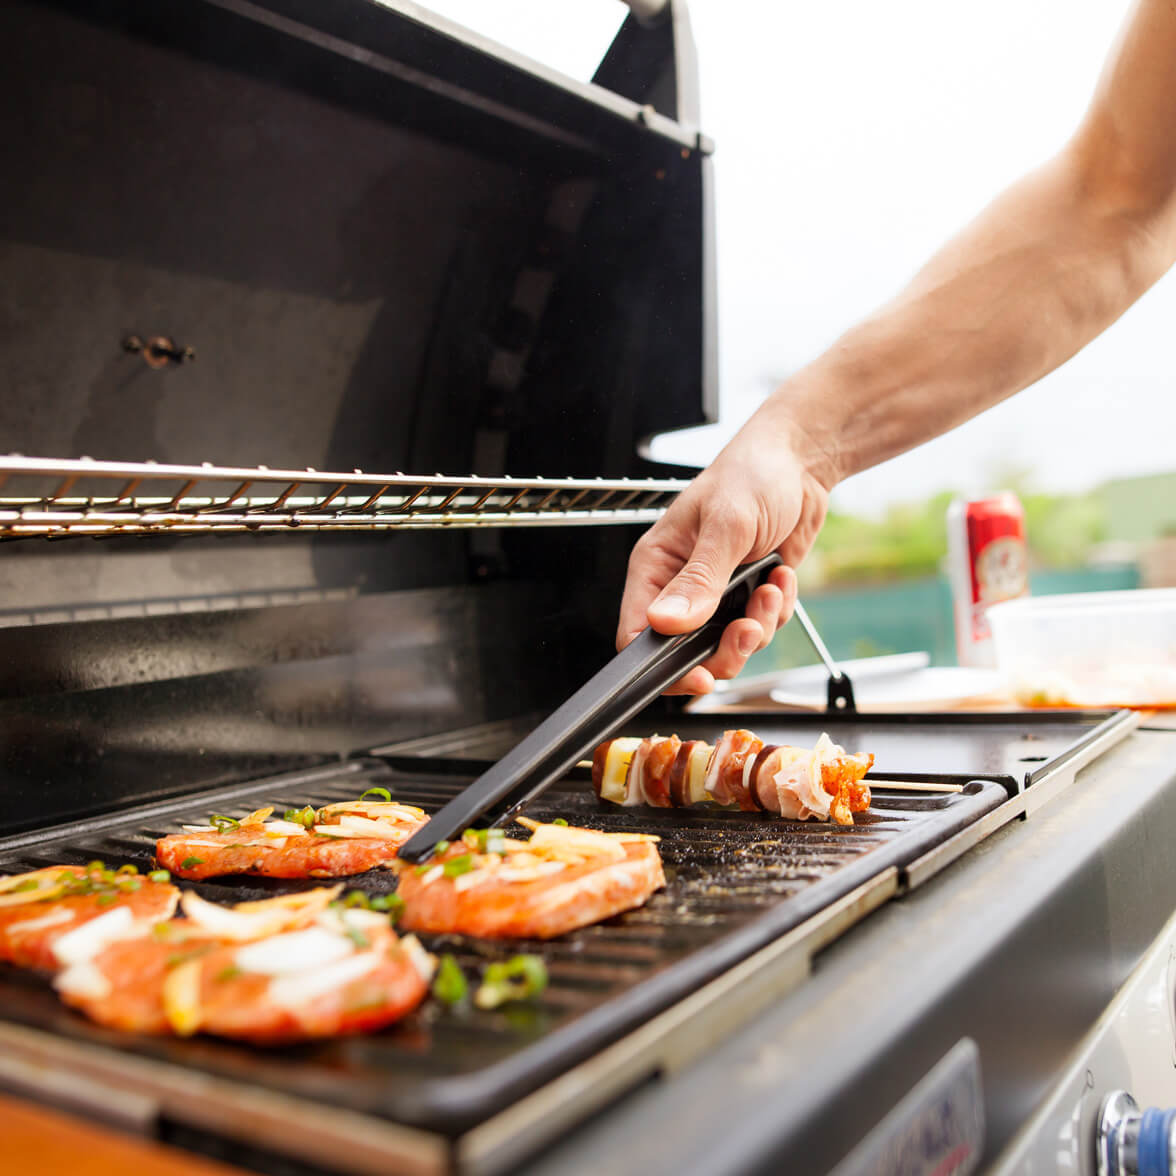 A person grilling food on a barbecue